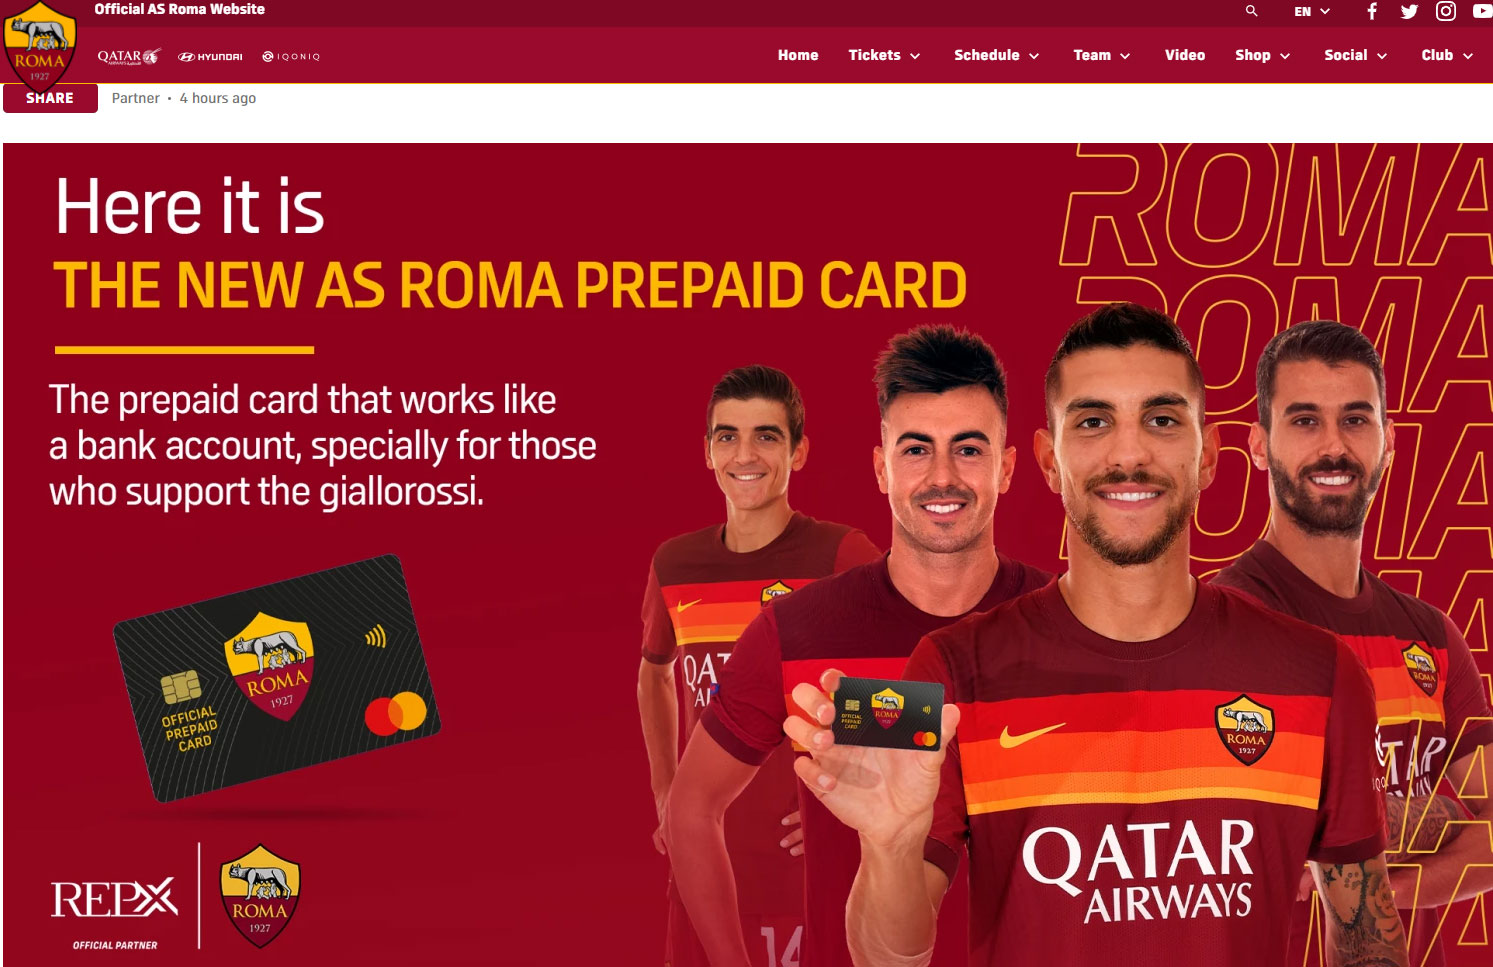 ASROMA.COM – AS ROMA AND REPX JOIN FORCES TO LAUNCH PREPAID CARD